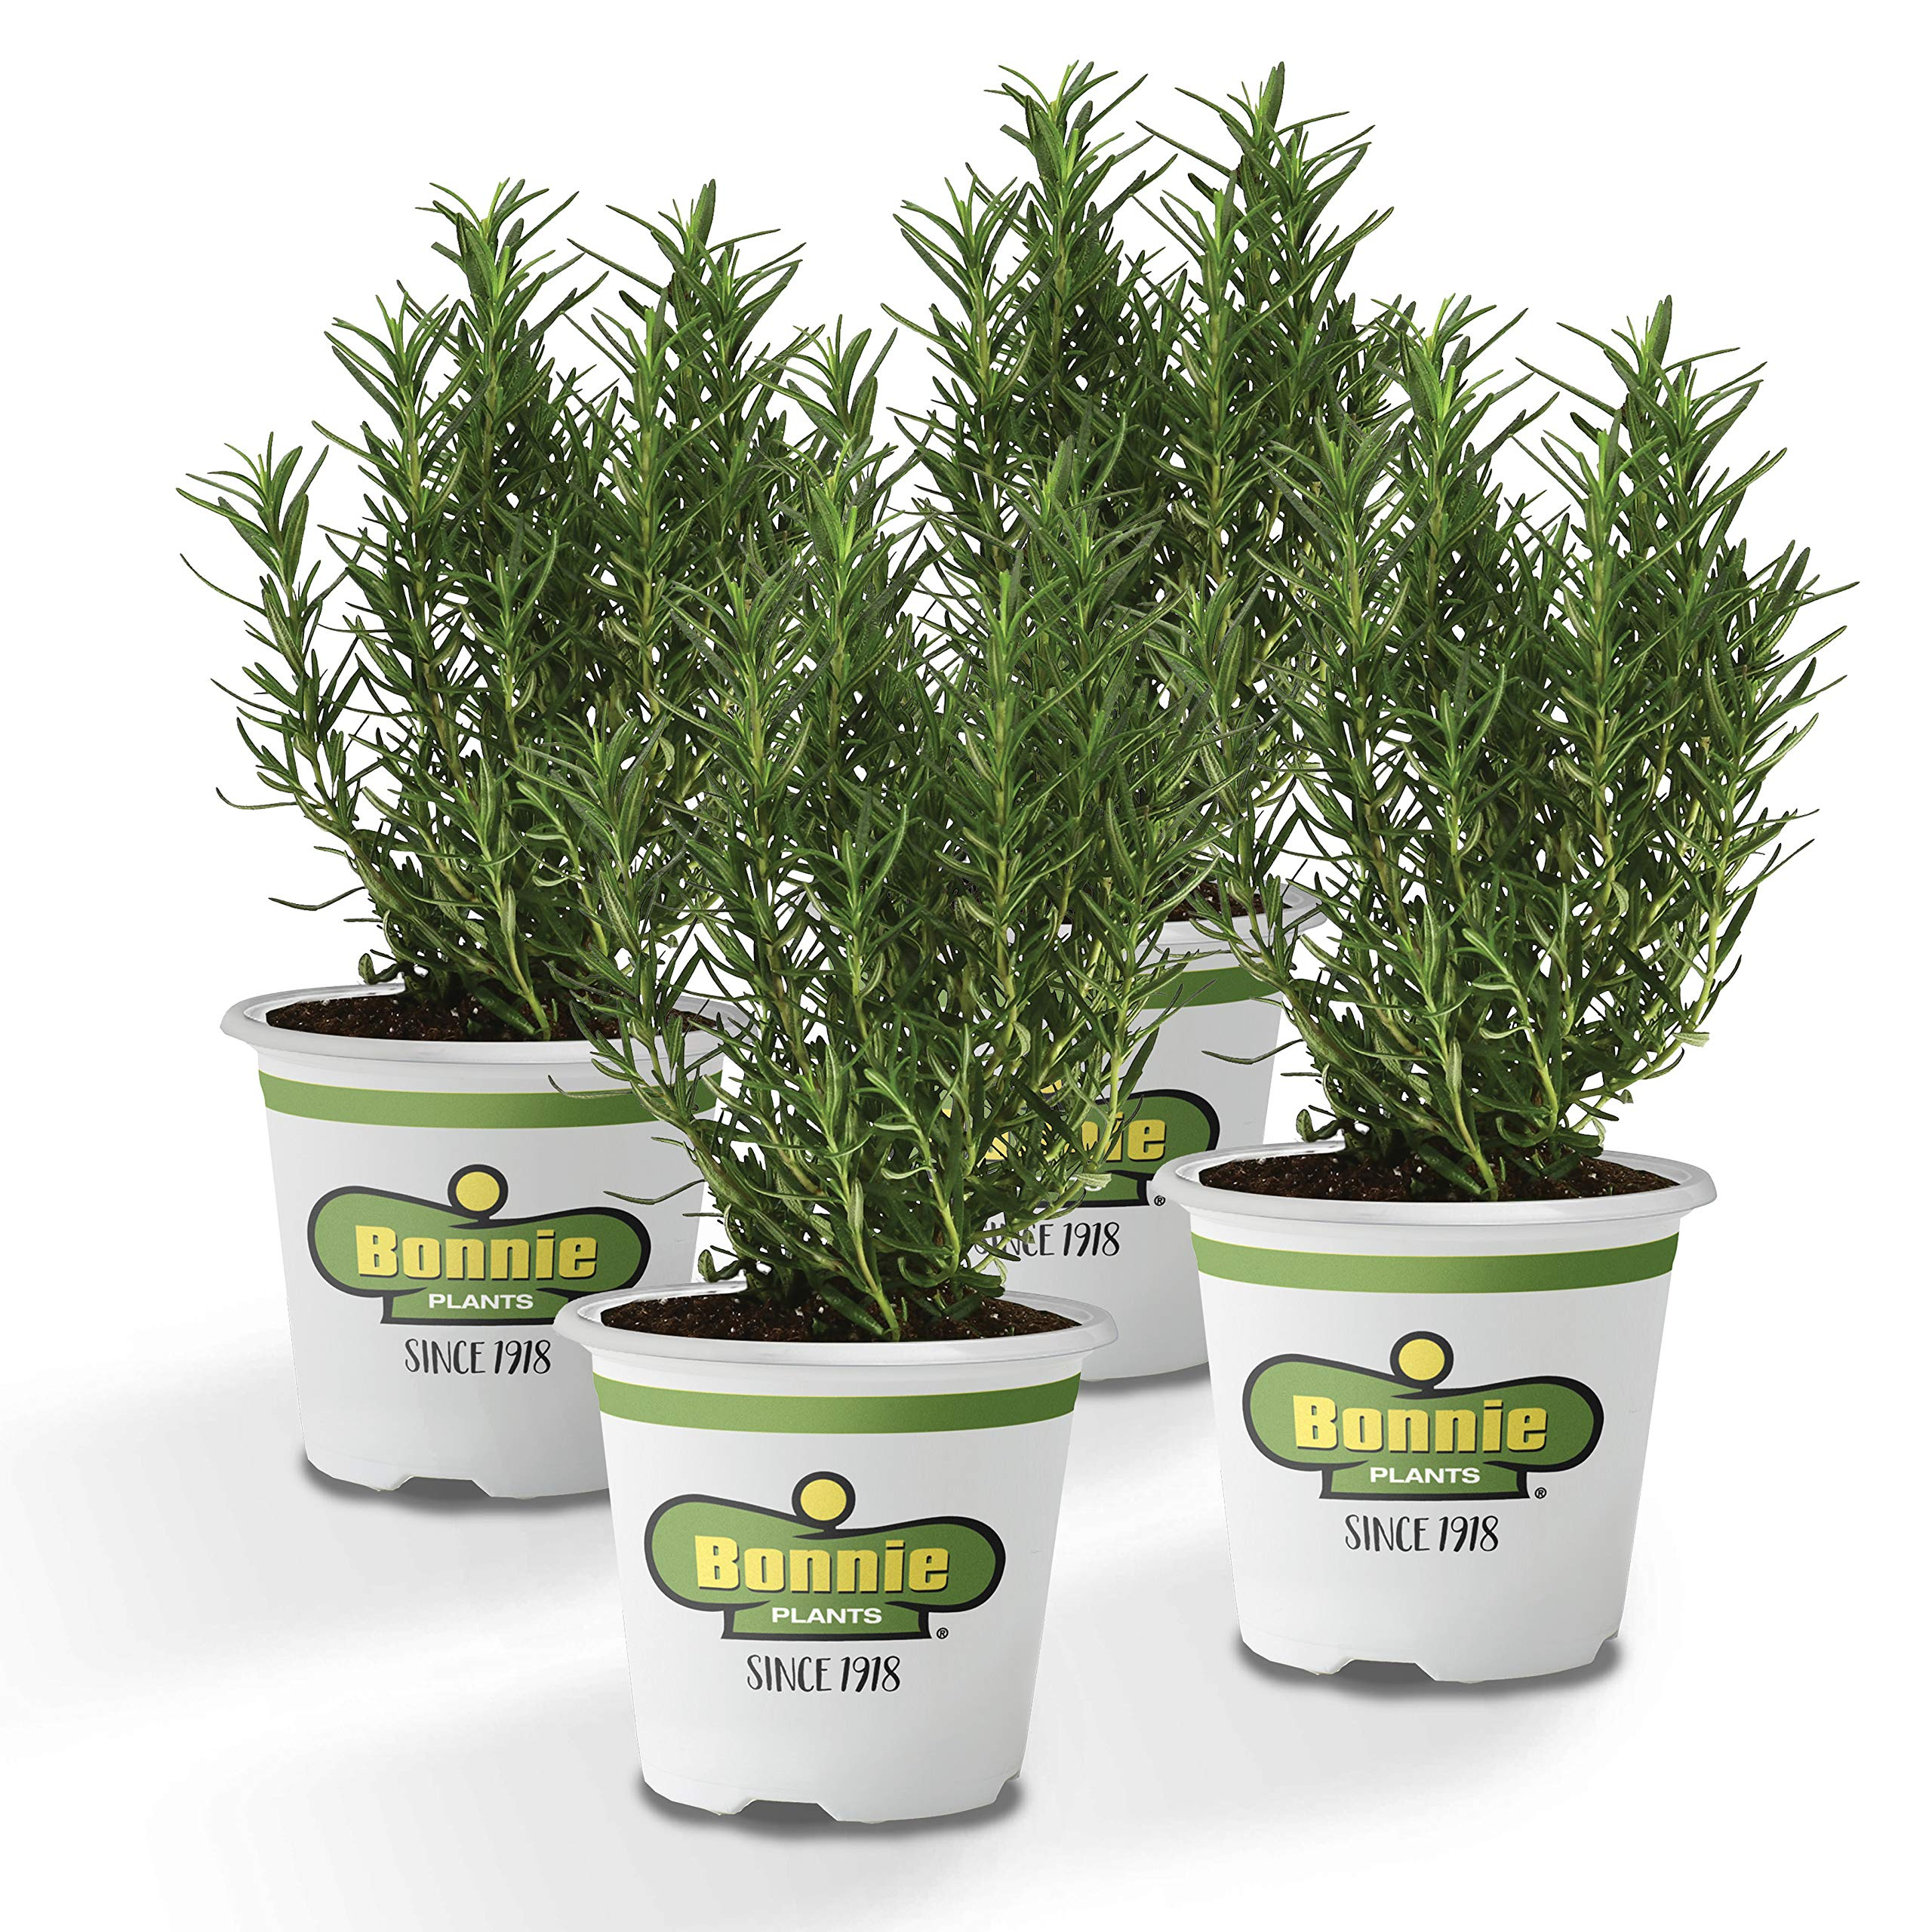 Bonnie Plants Rosemary Live Edible Aromatic Herb Plant - 4 Pack | Perennial in Zones 8 To 10 | Great for Cooking & Grilling | Italian & Mediterranean Dishes, Vinegars & Oils, Breads